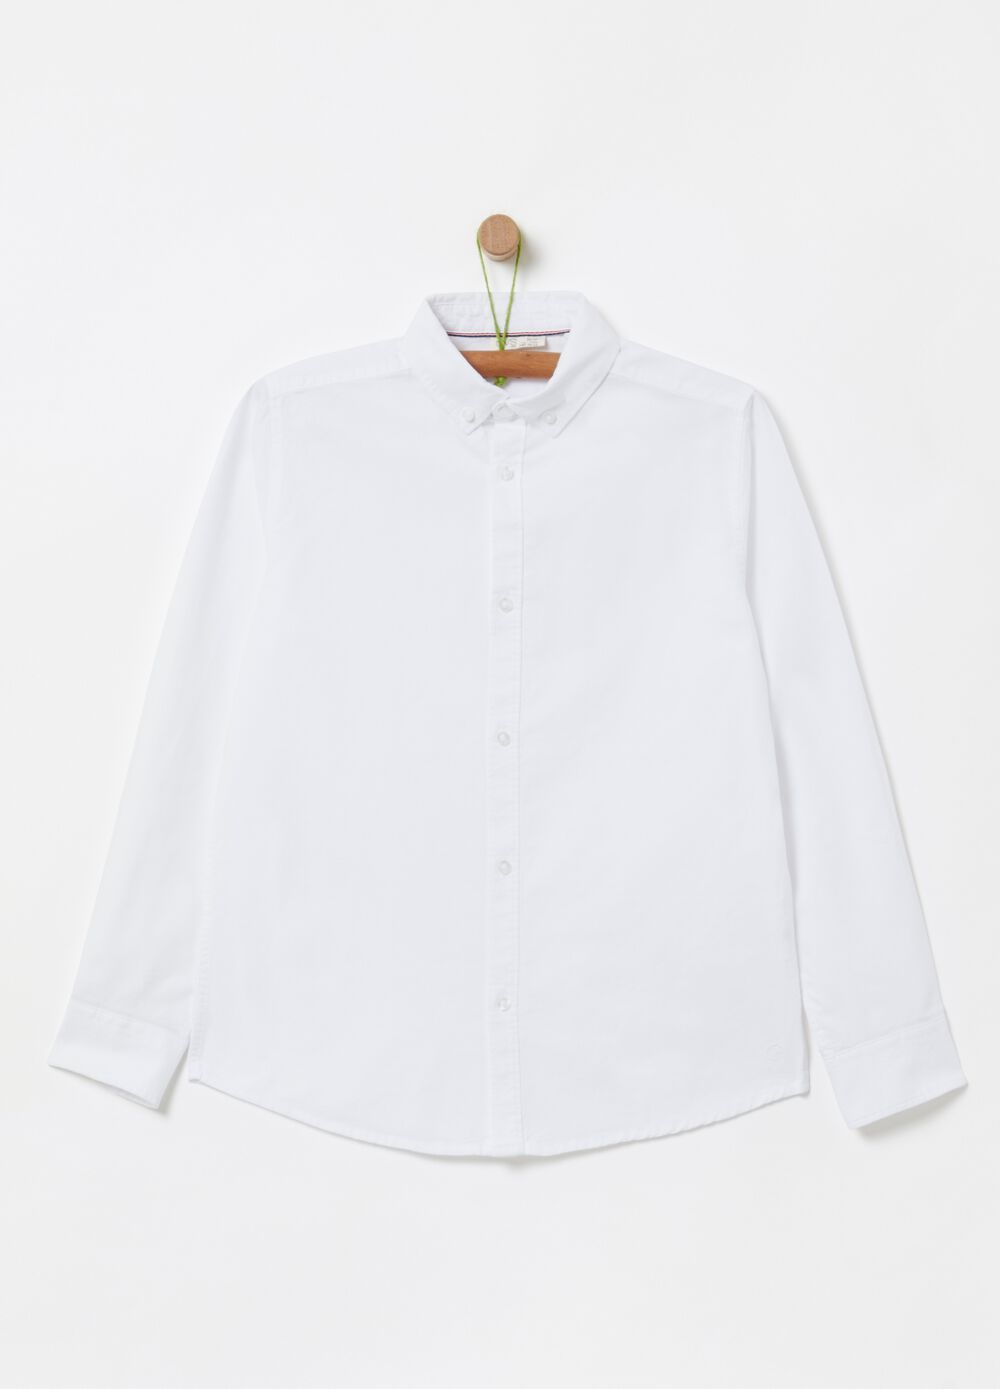 100% organic cotton shirt